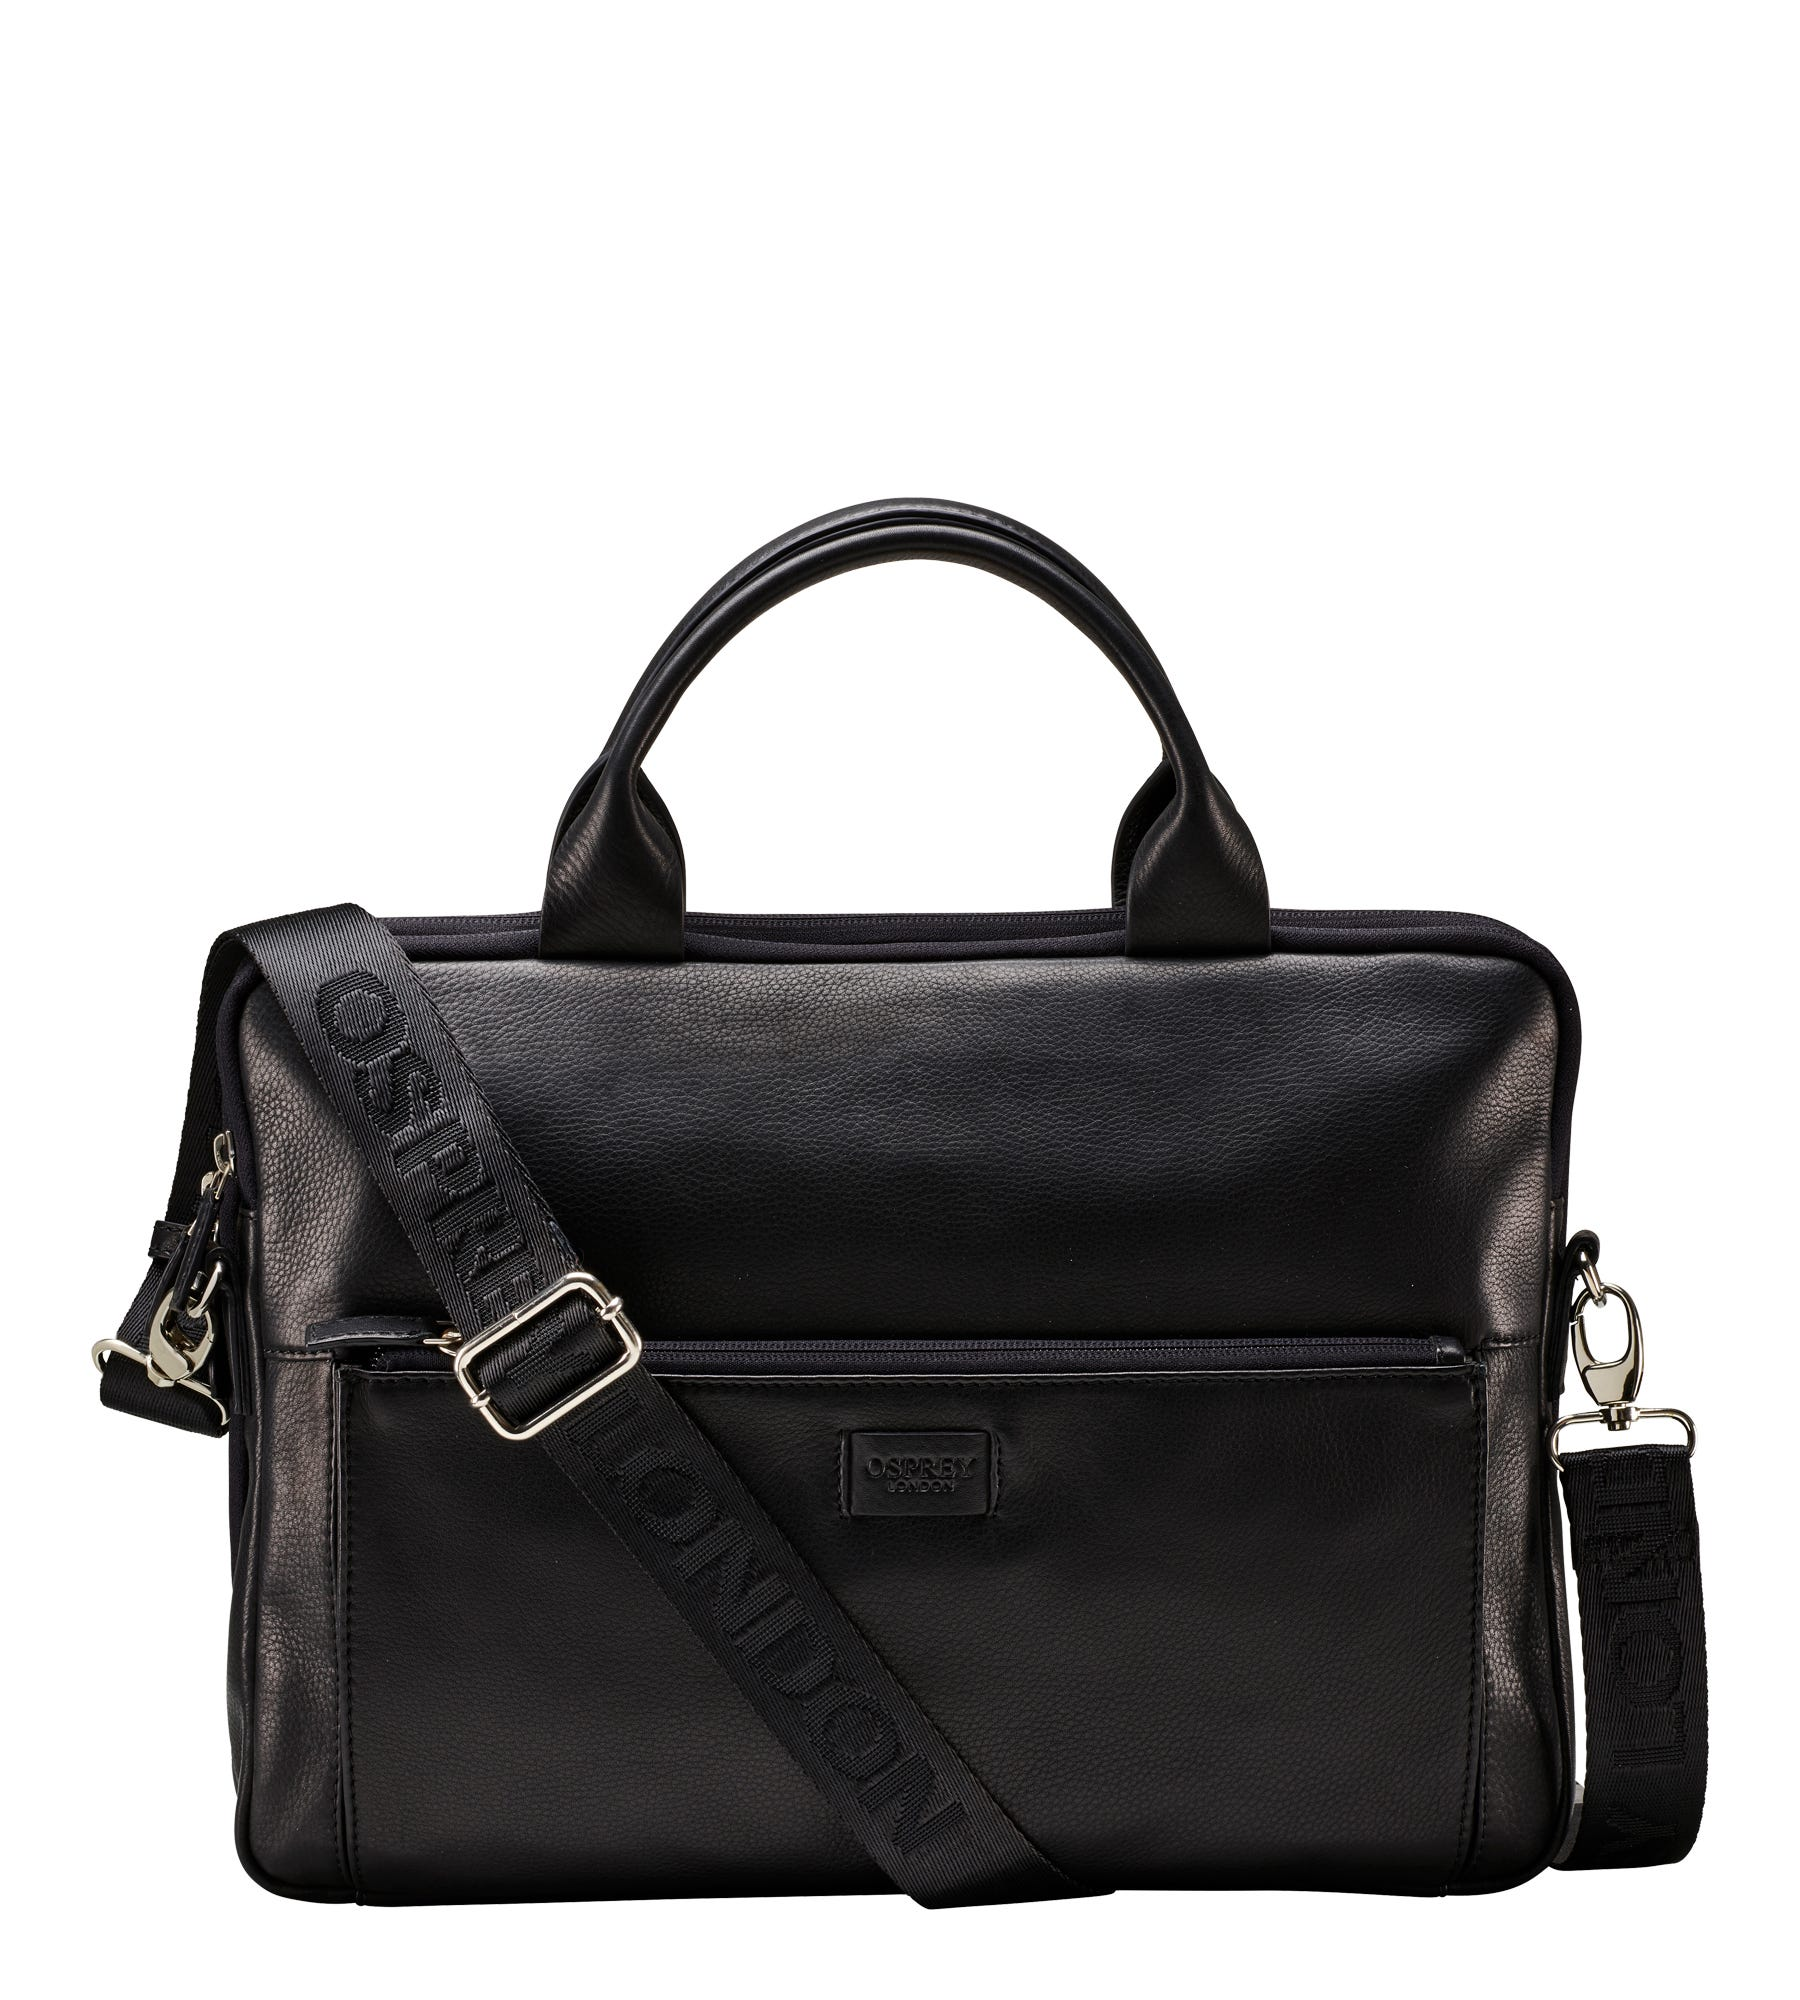 An image of The Baltimore Leather Laptop Bag